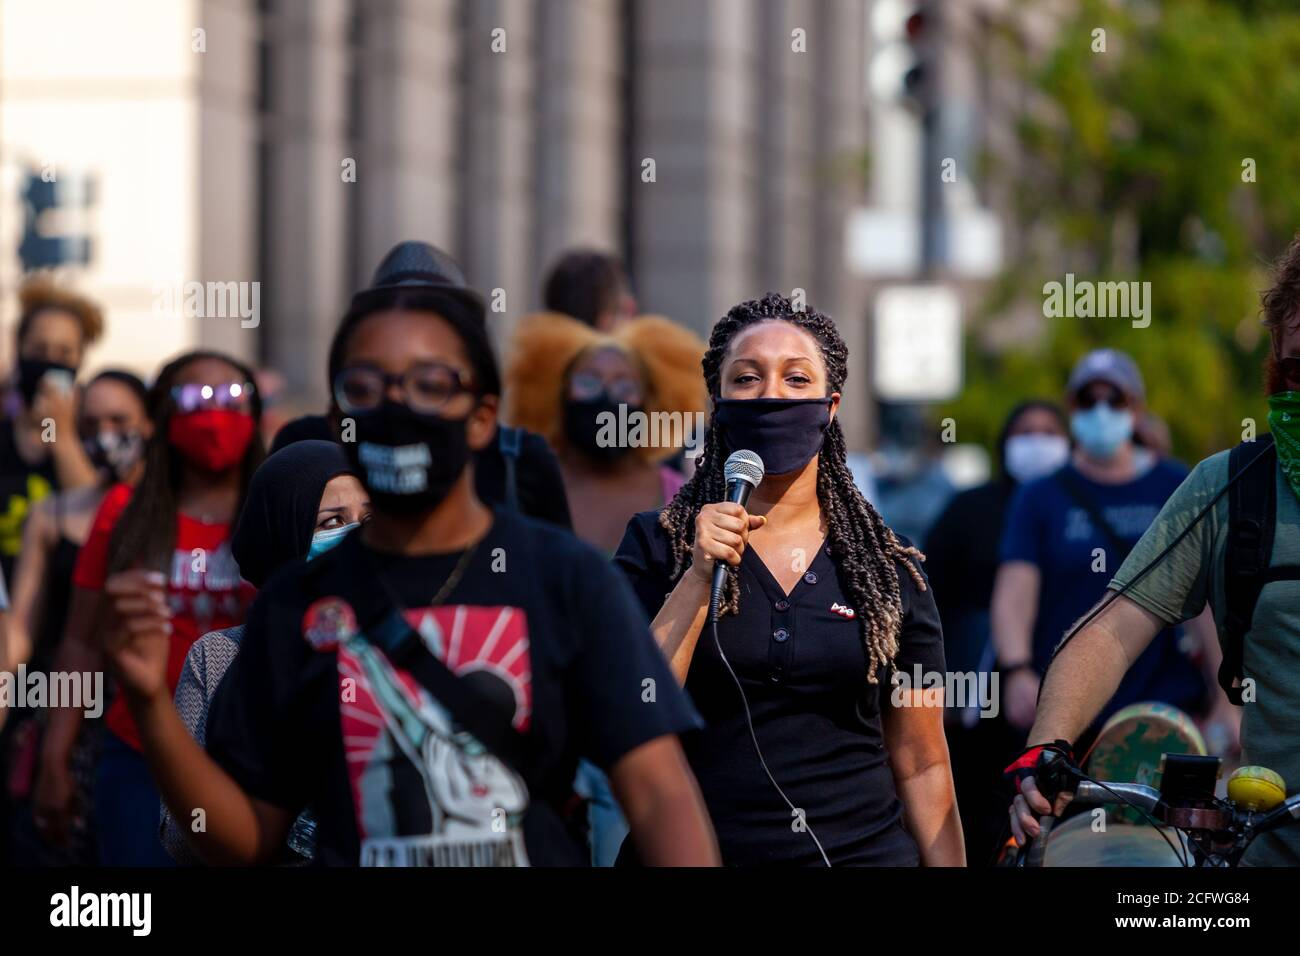 Washington, DC, USA, September 7, 2020. Pictured: A protester leads the crowd in singing as they walk down 14th Street en route to Freedom Plaza during Let Freedom Sing, a community-building protest and voter registration event by the Freedom Day Foundation and Head Count. Credit: Allison C Bailey/Alamy Credit: Allison Bailey/Alamy Live News Stock Photo